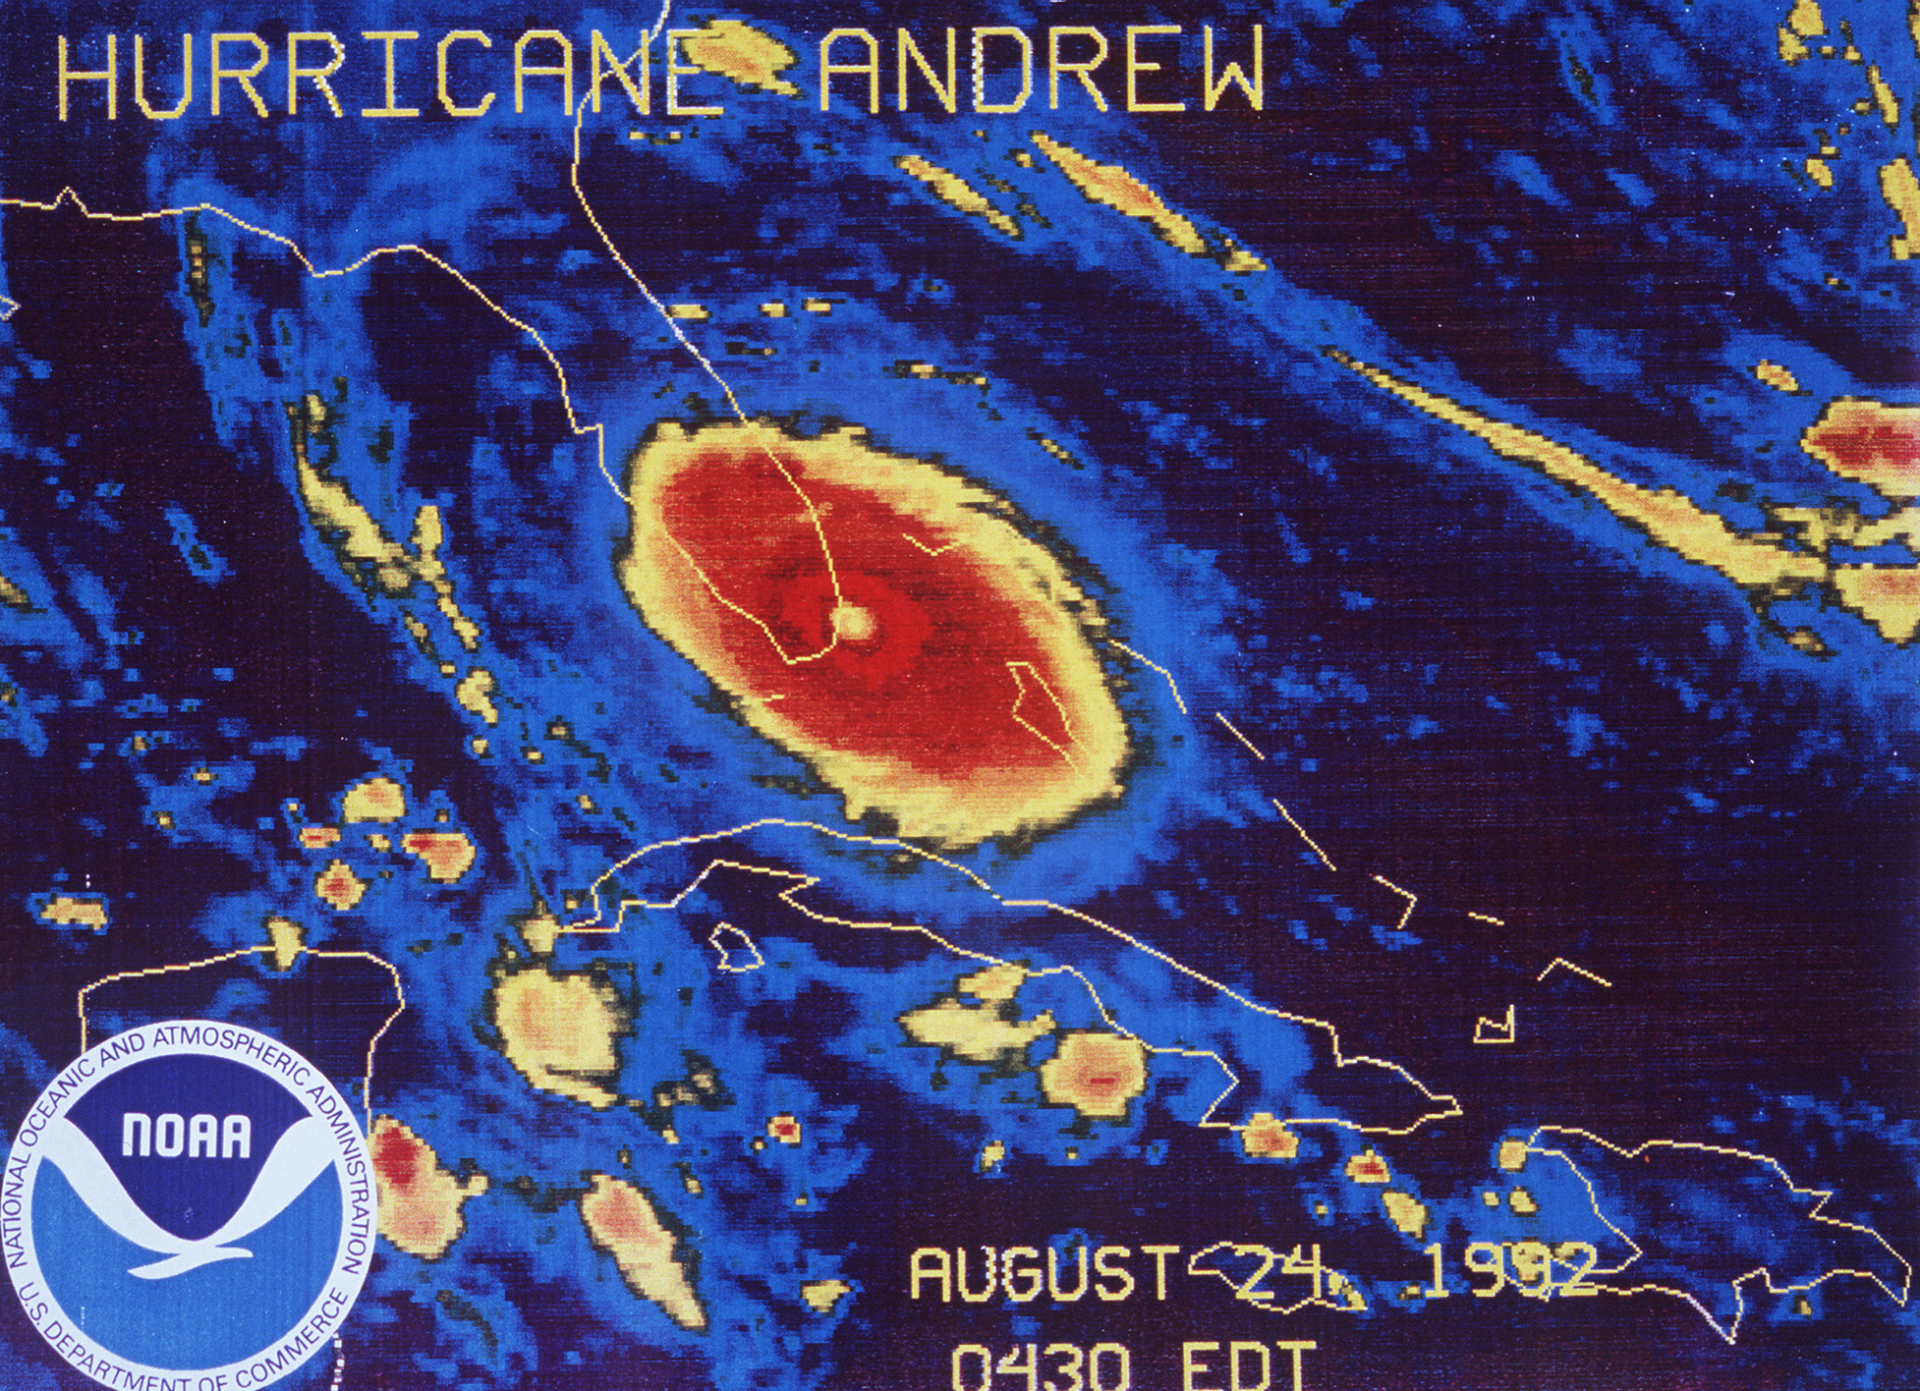 Hurricane Irma Likely To Be Far Worse Than Monster Andrew With Images Hurricane Andrew Hurricane Monster